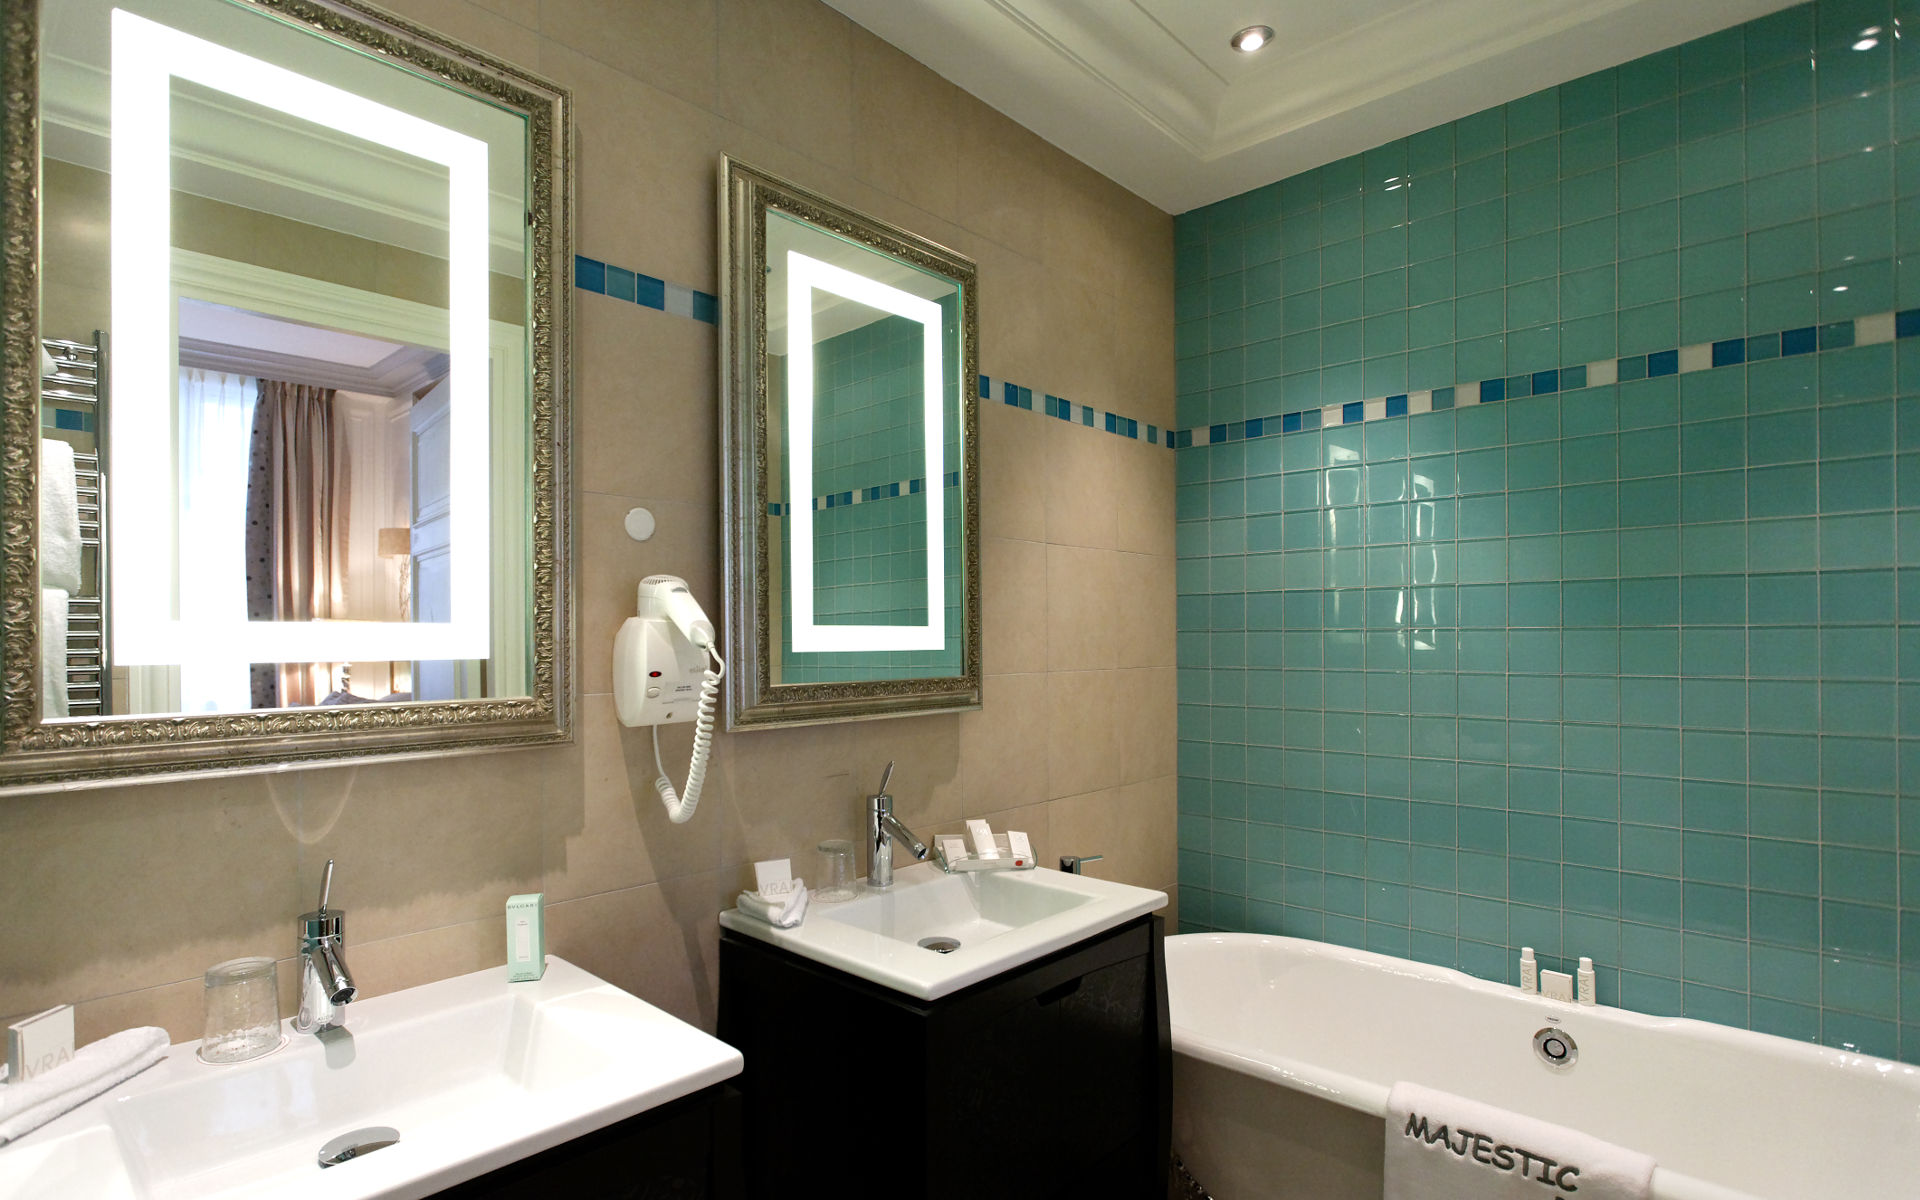 260/Suites/Suite junior/Suite Junior - Bathroom 10 -  Majestic Hotel-Spa.jpg